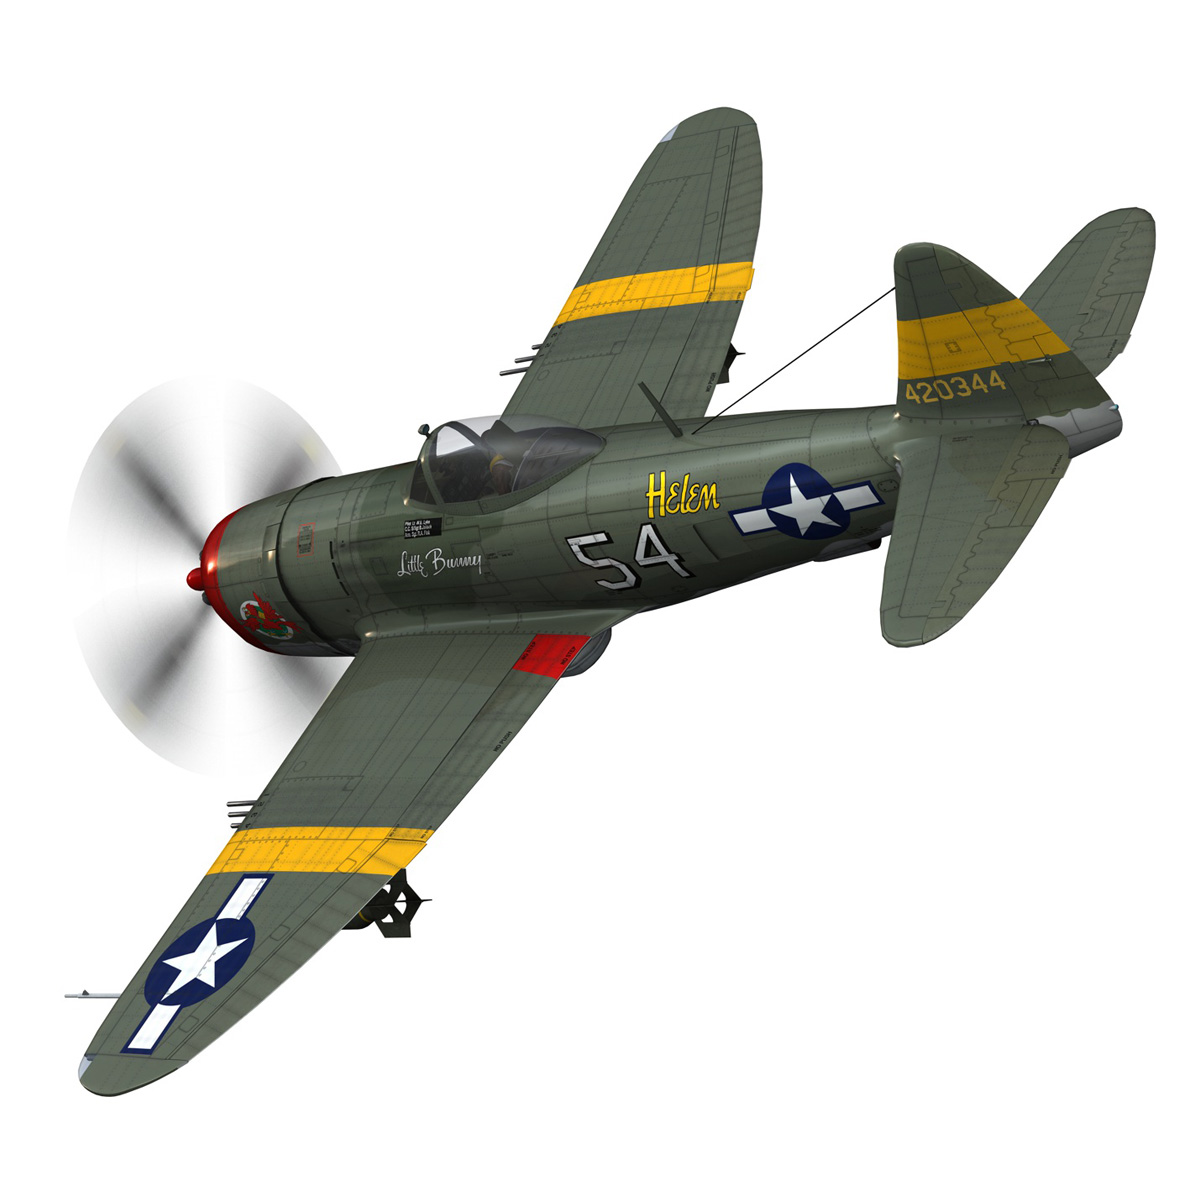 republic p-47d thunderbolt – little bunny 3d model fbx c4d lwo obj 274223